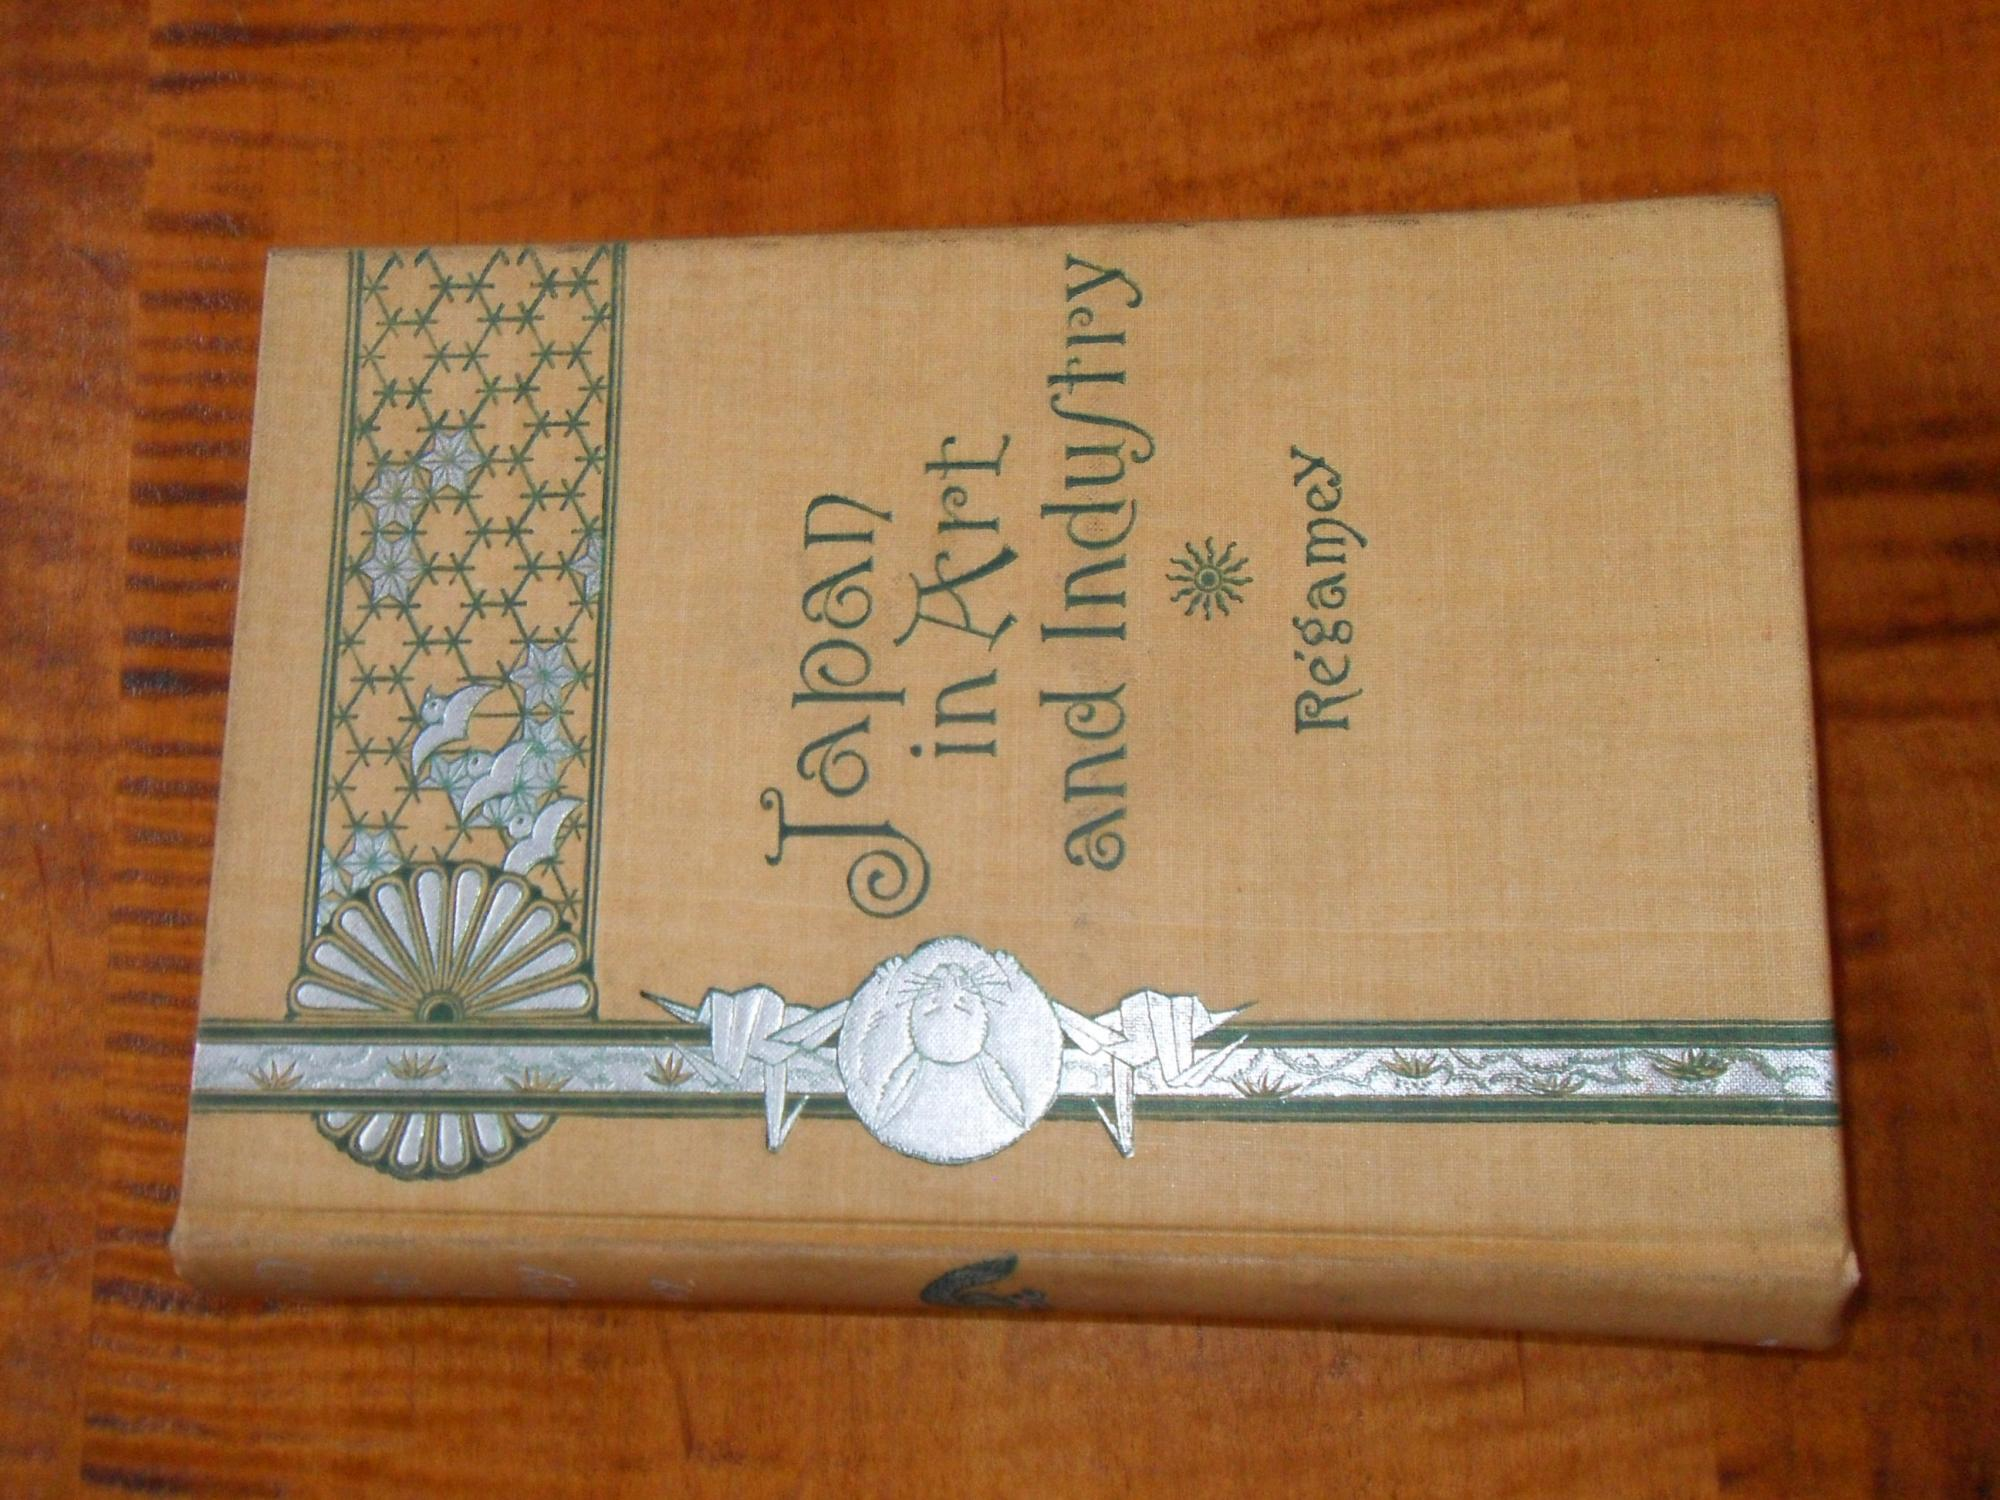 JAPAN IN ART AND INDUSTRY WITH A GLANCE AT JAPANESE CUSTOMS Felix Regamey Near Fine Hardcover